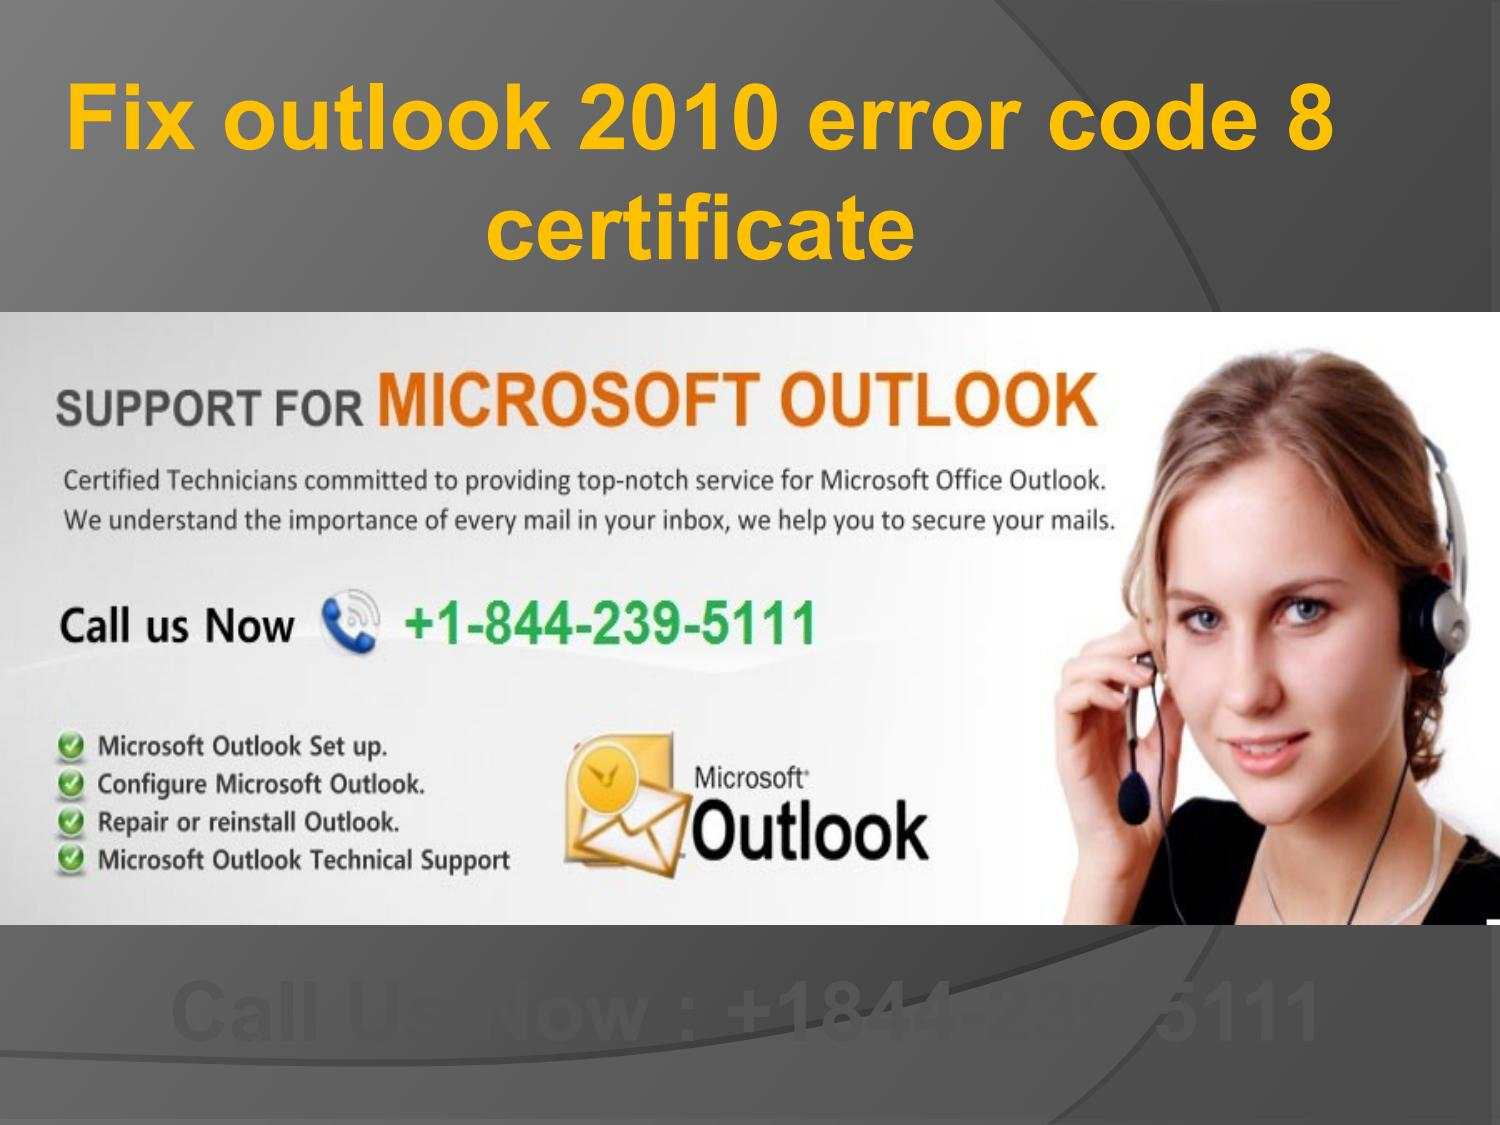 1 844 239 5111 fix outlook 2010 error code 8 certificate by md adi 1 844 239 5111 fix outlook 2010 error code 8 certificate by md adi issuu xflitez Choice Image